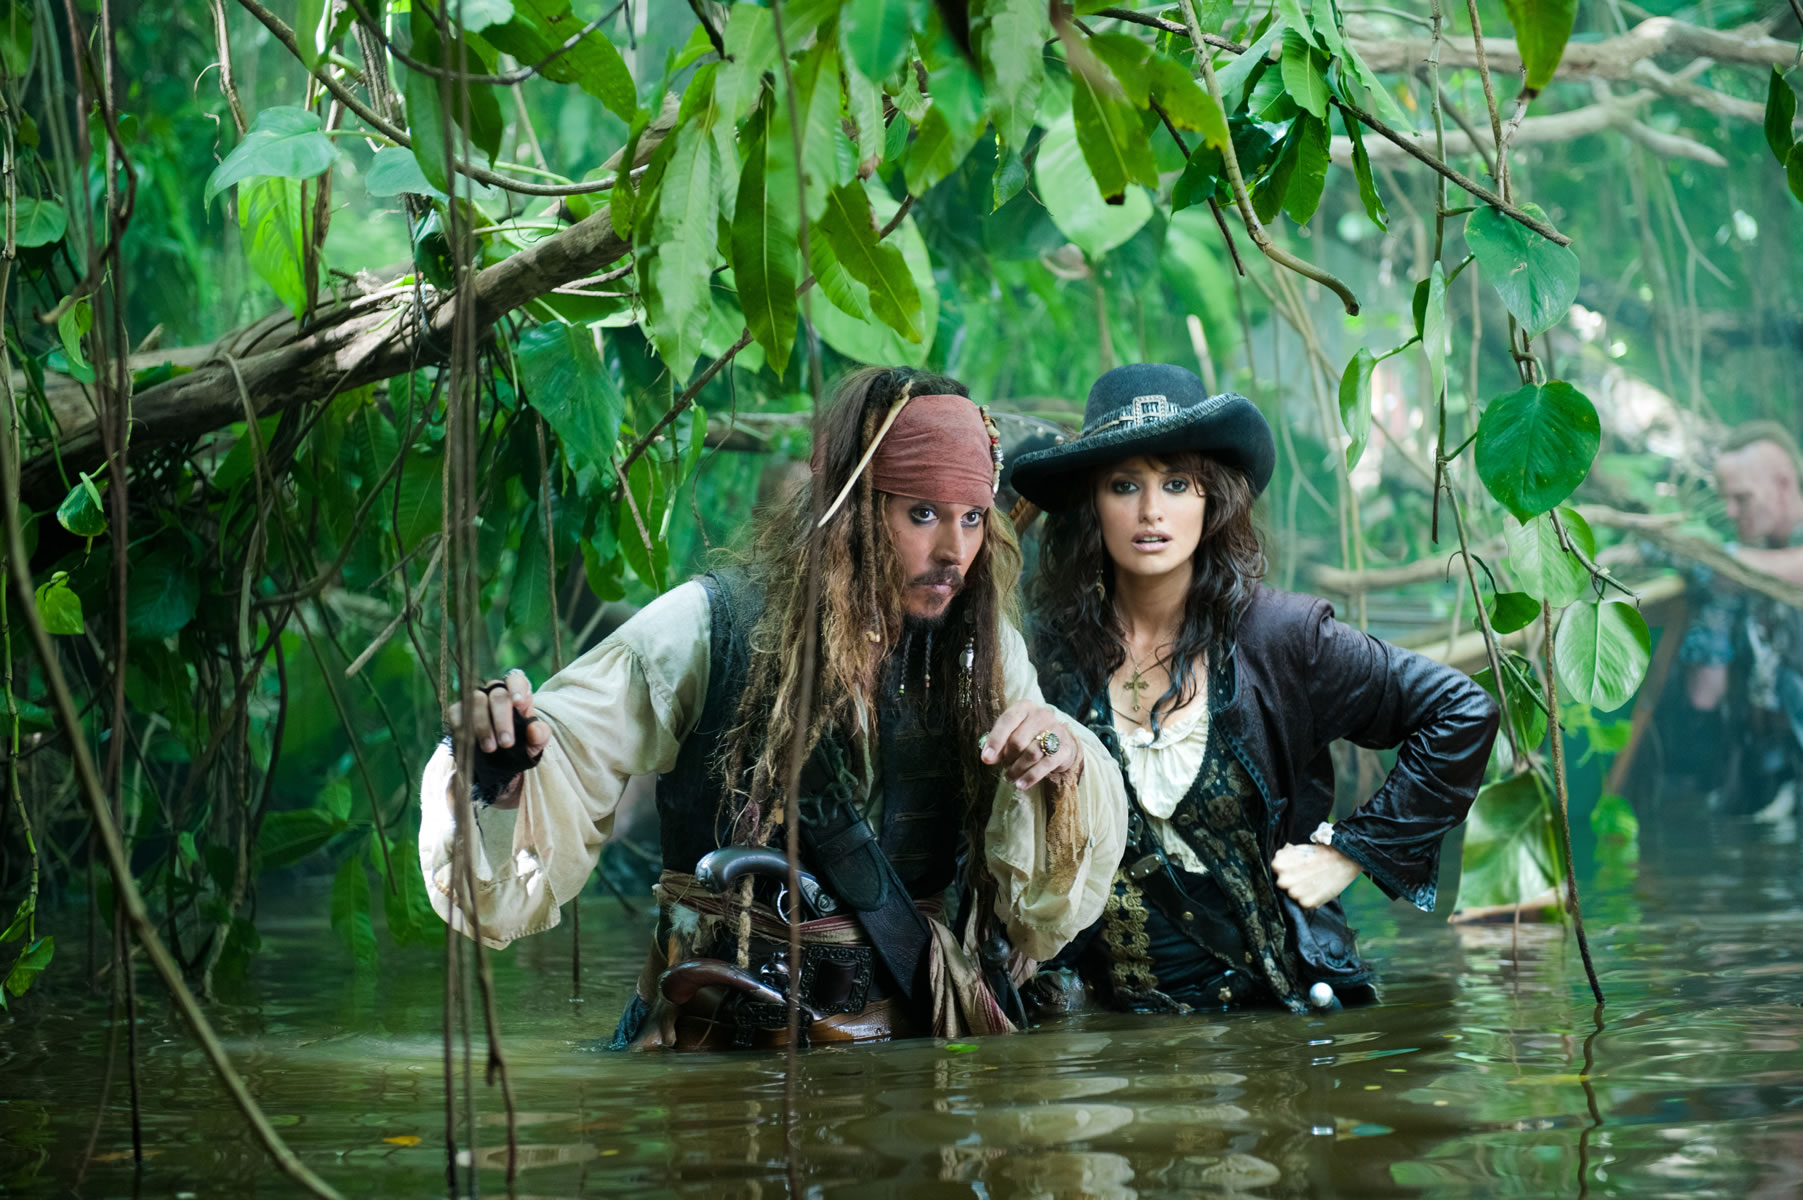 ... Penélope Cruz star in PIRATES OF THE CARIBBEAN: ON STRANGER TIDES